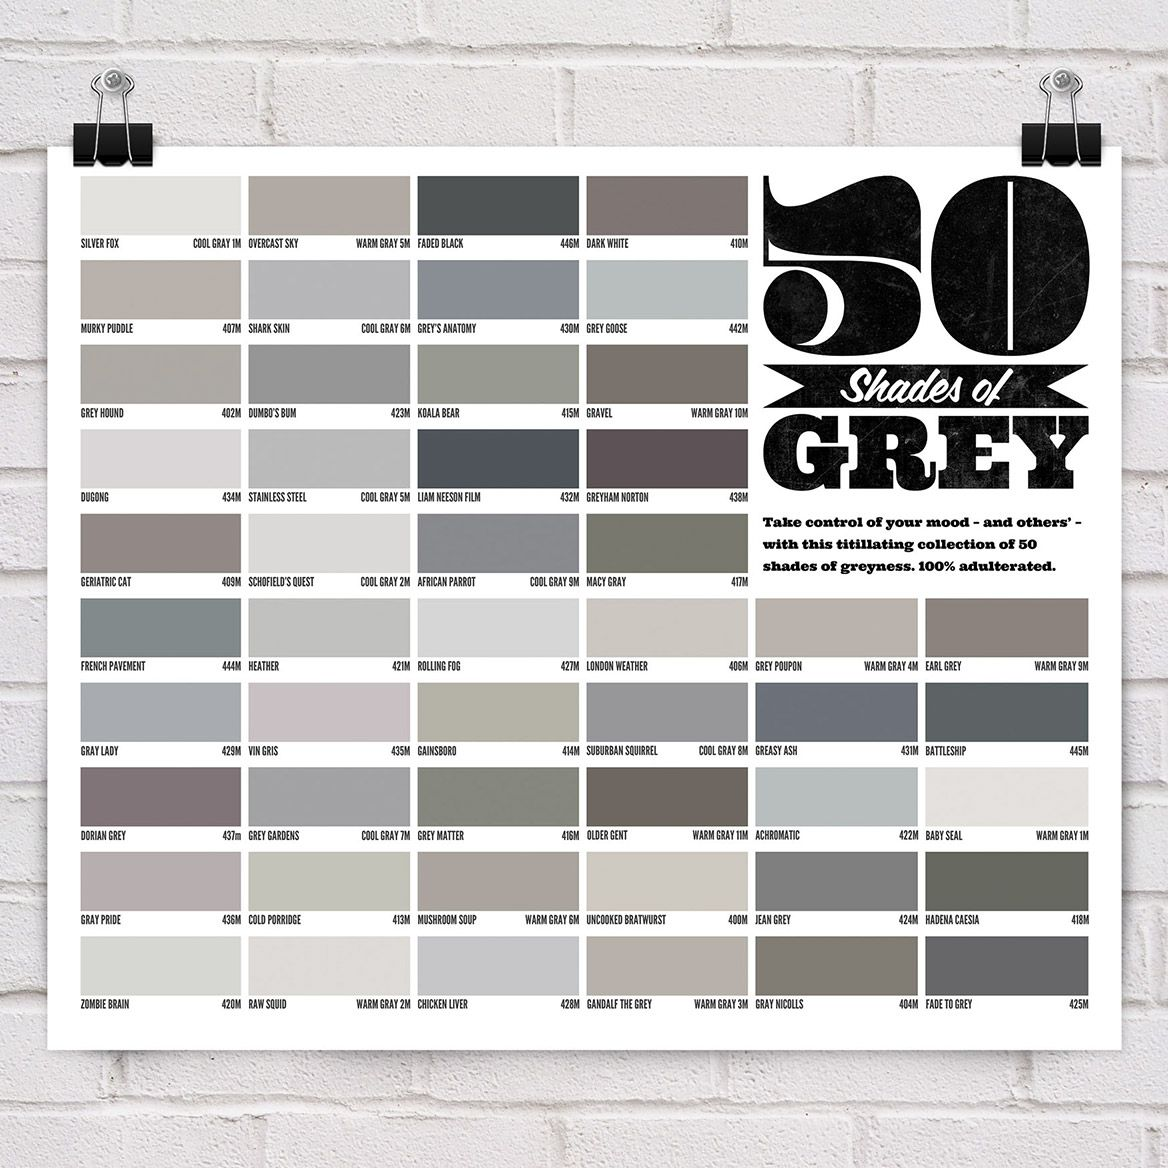 shades of grey poster paint colors grey and liam neeson 50 shades of grey poster